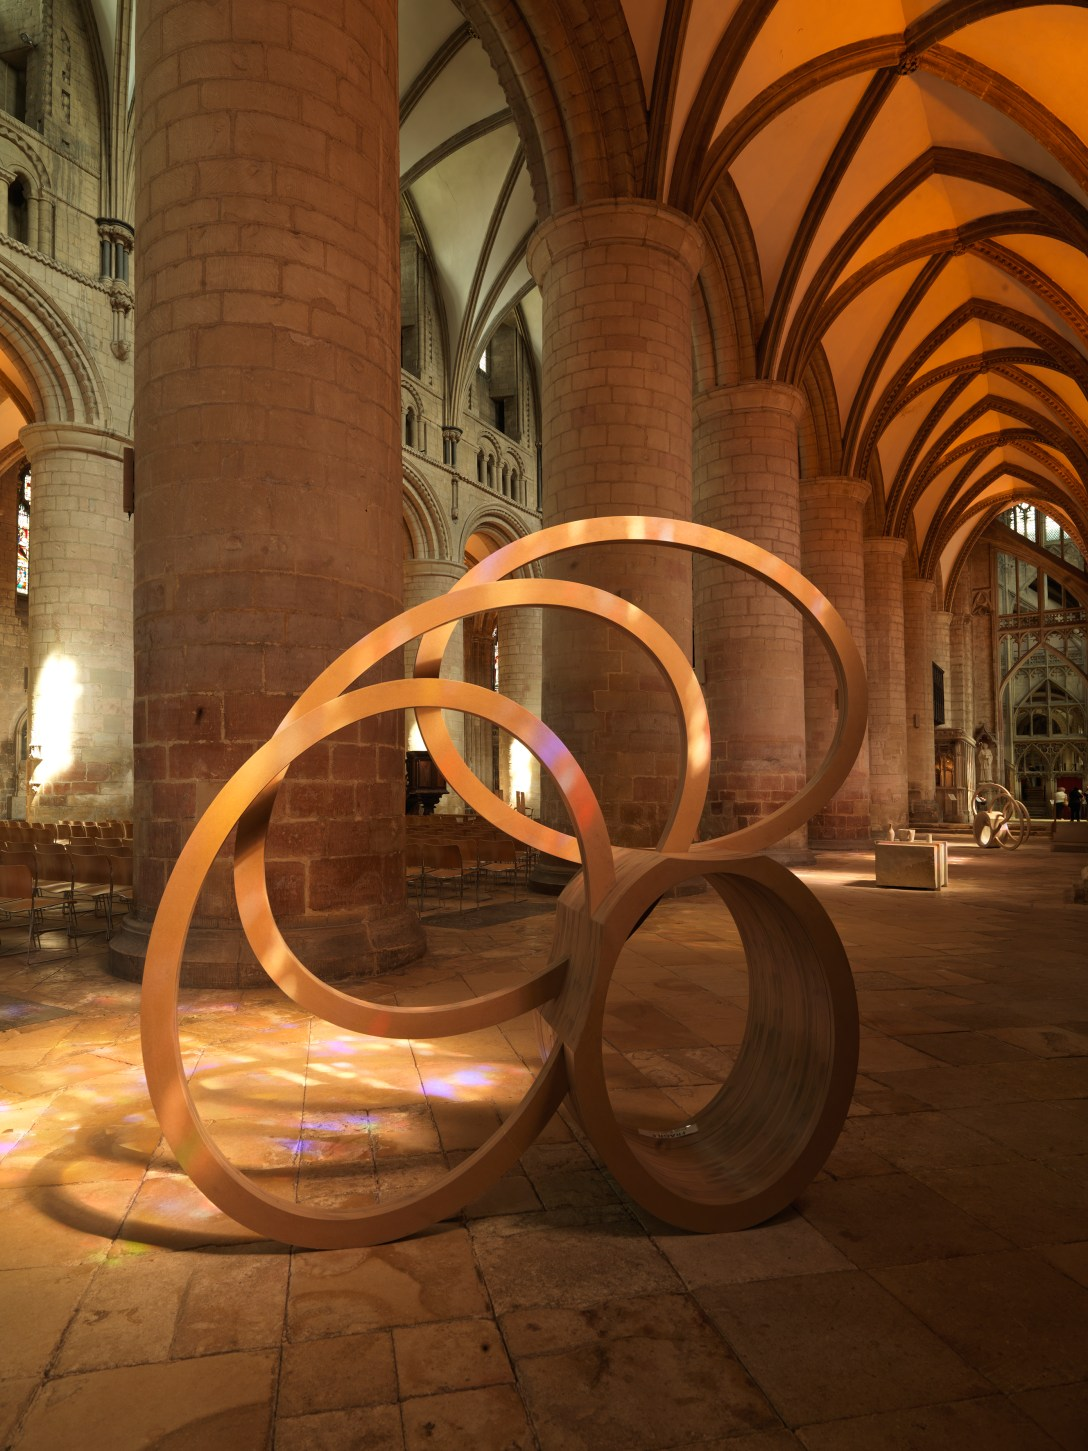 Nigel Hall 'Bronze' 'Sculpture' at Gloucester Cathedral